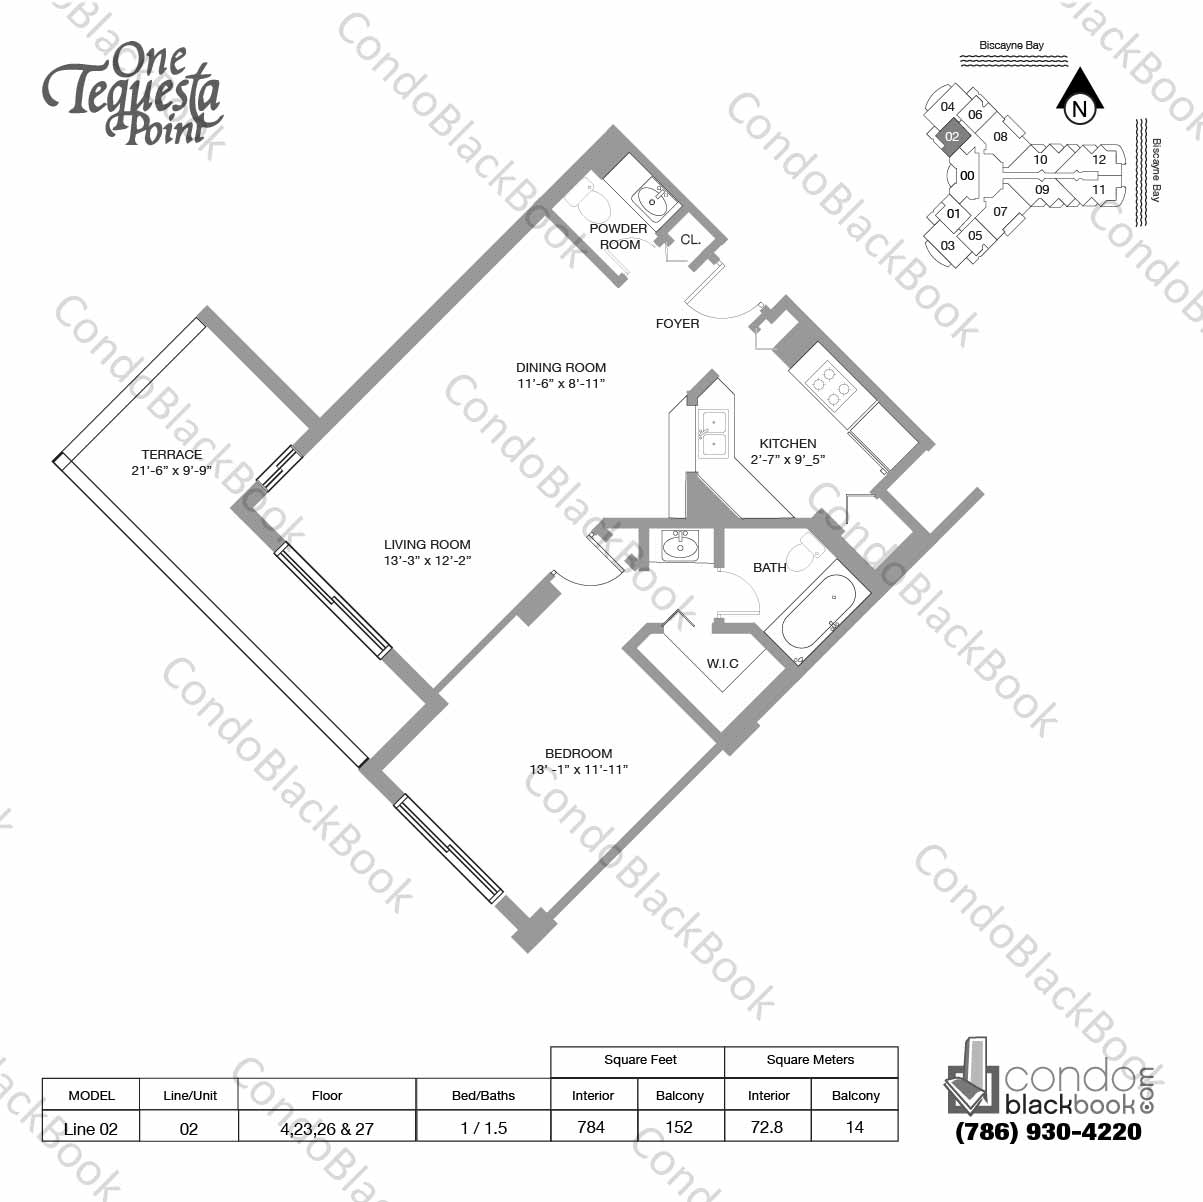 Floor plan for One Tequesta Point Brickell Key Miami, model Line 02, line 02, 1 / 1.5 bedrooms, 784 sq ft